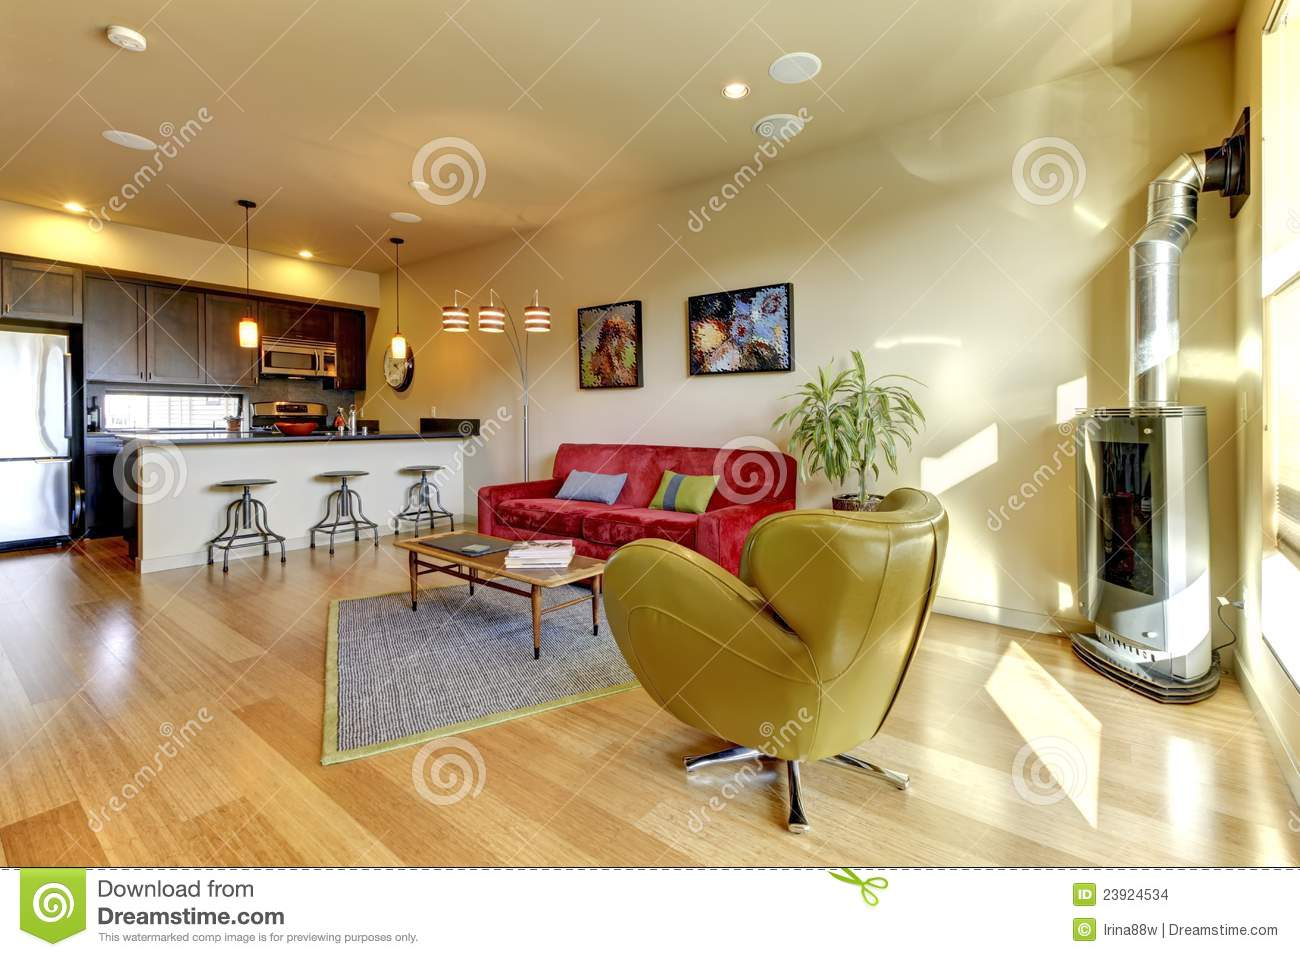 Living Room With Red Sofa Yellow Living Room Ith Red Sofa And Kitchen Royalty Free Stock